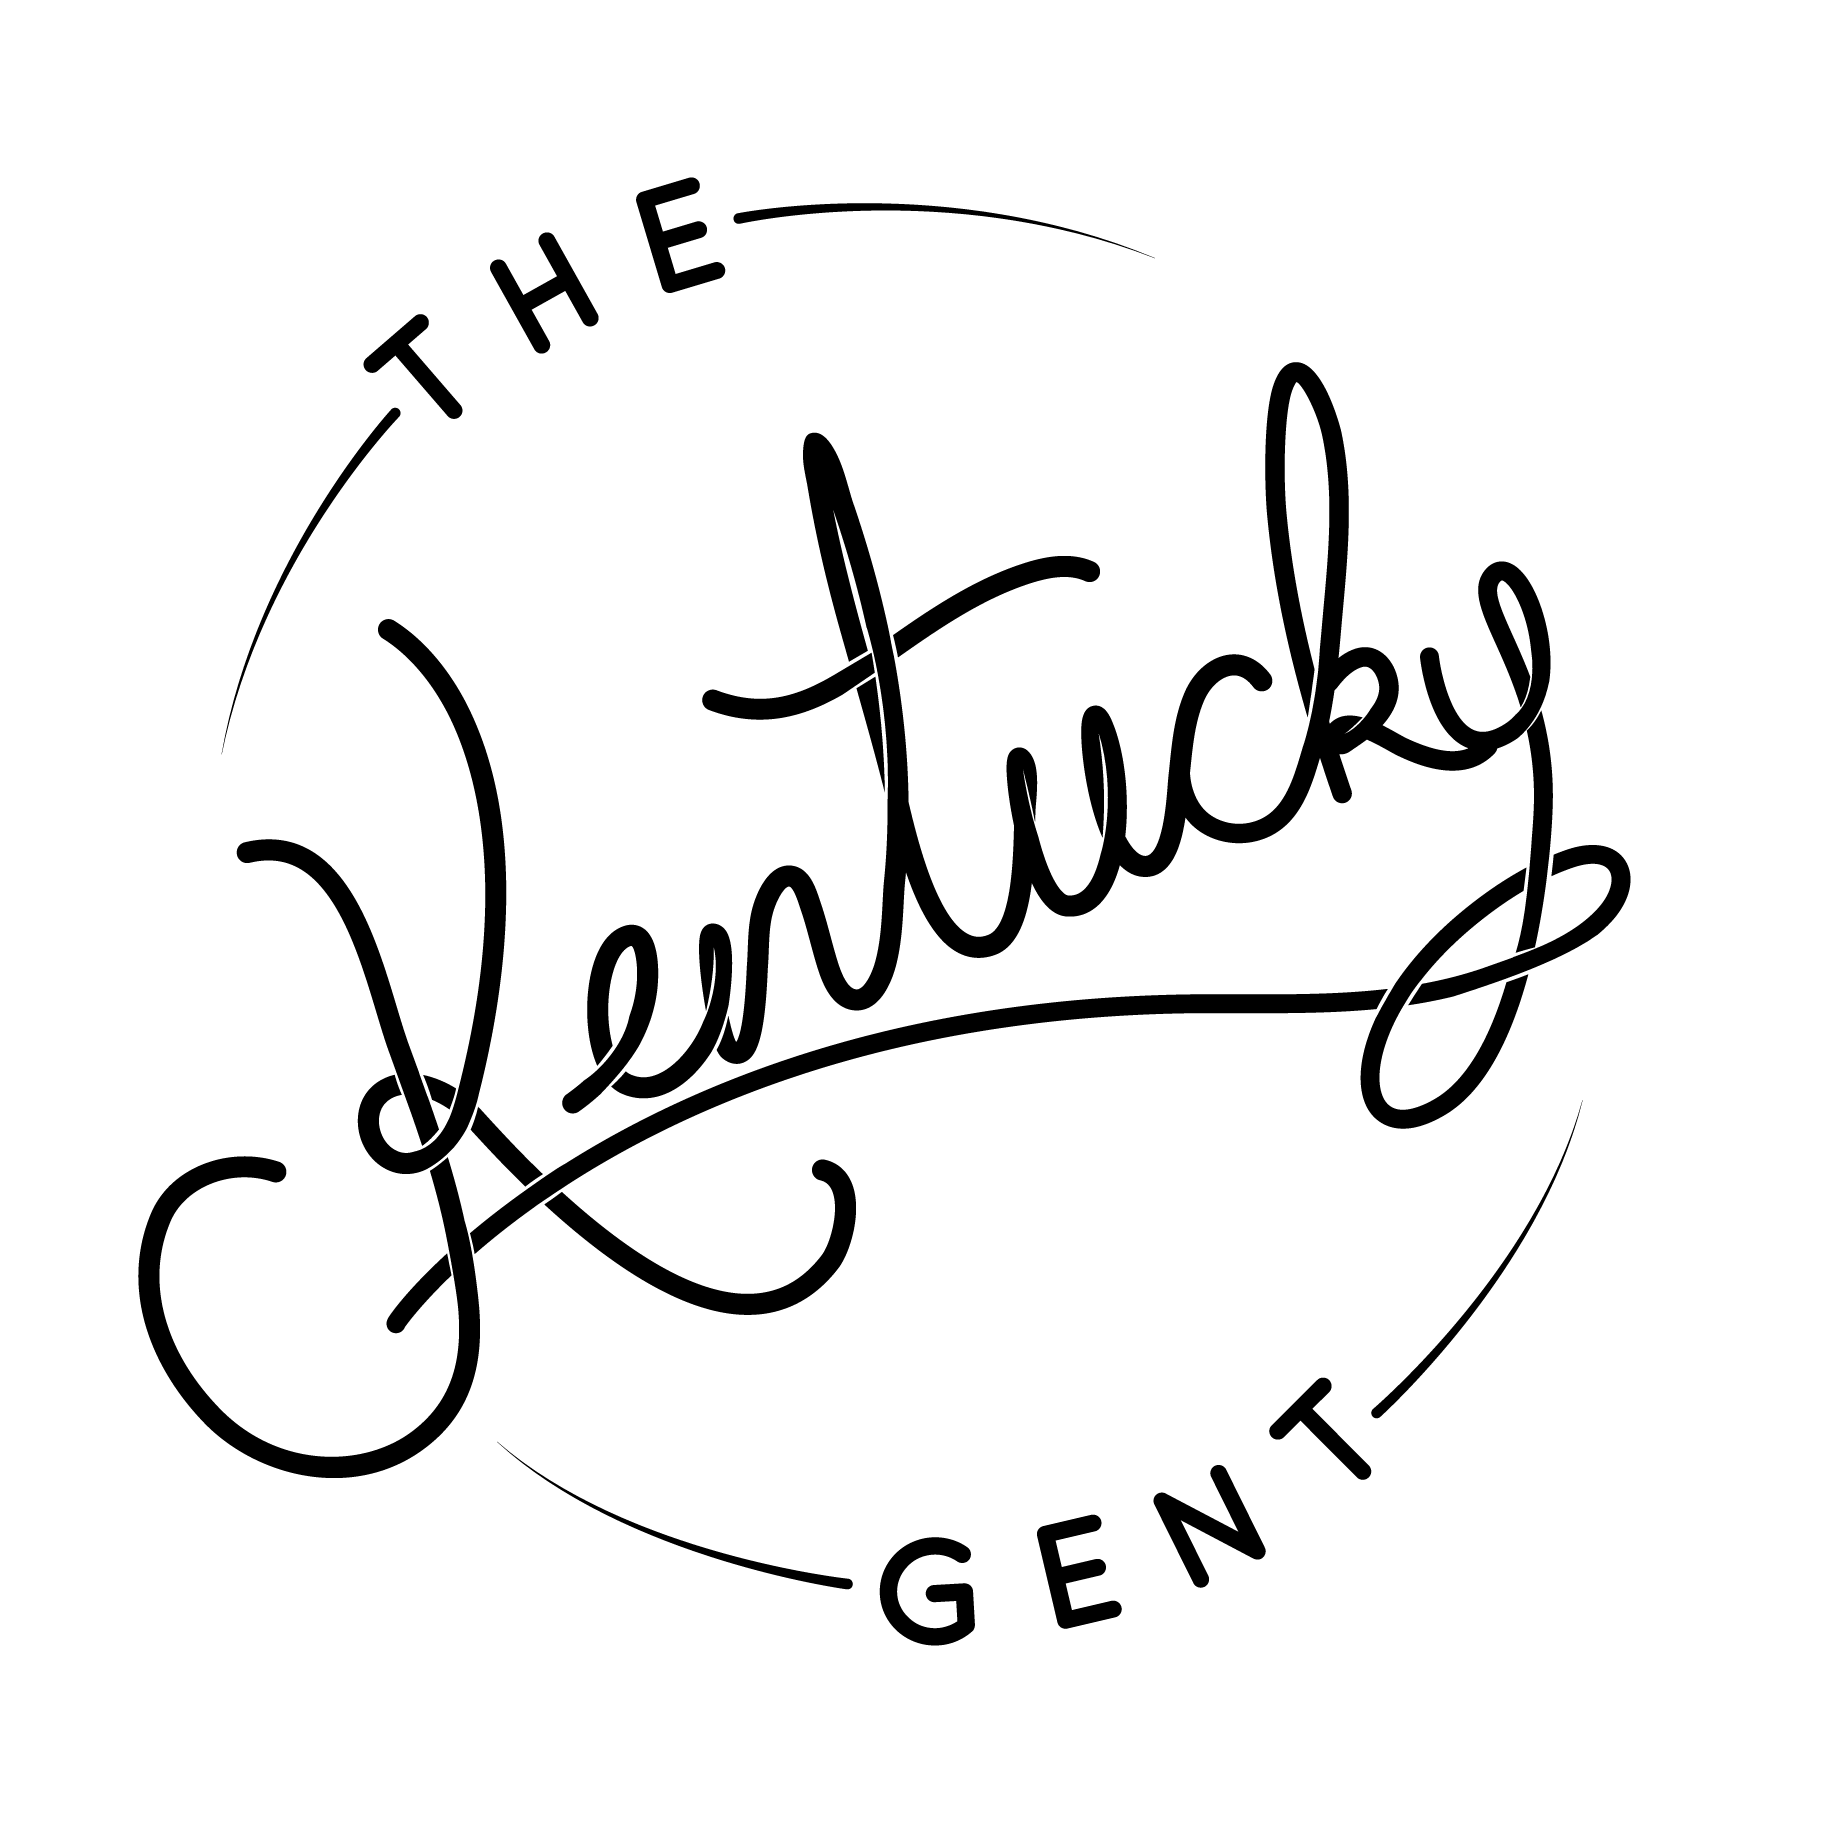 1838x1838 Your Brand The Kentucky Gent